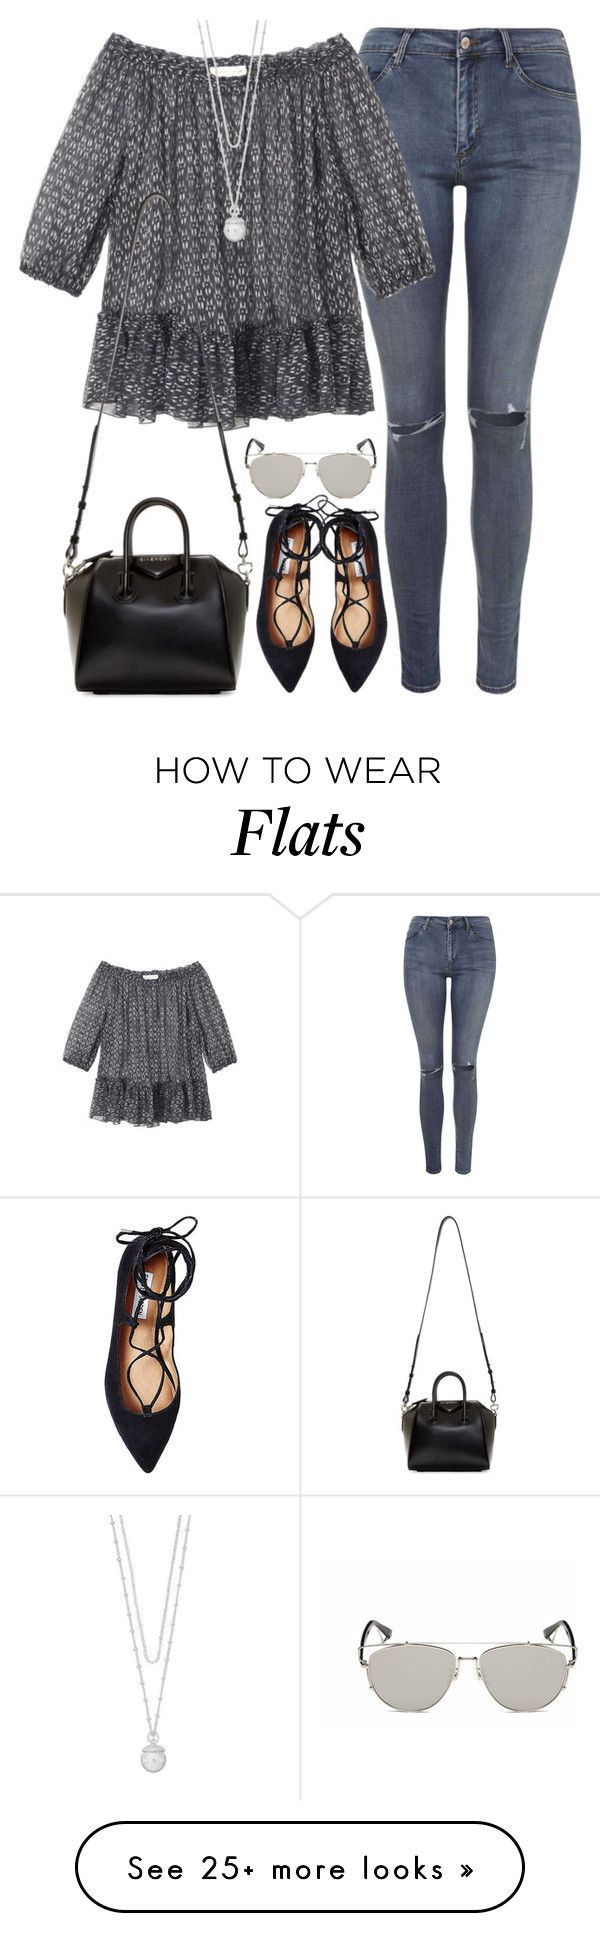 """Untitled#3873"" by fashionnfacts on Polyvore featuring Topshop, Rebecca Taylor, Steve Madden, Givenchy, Retrò and The Limited"